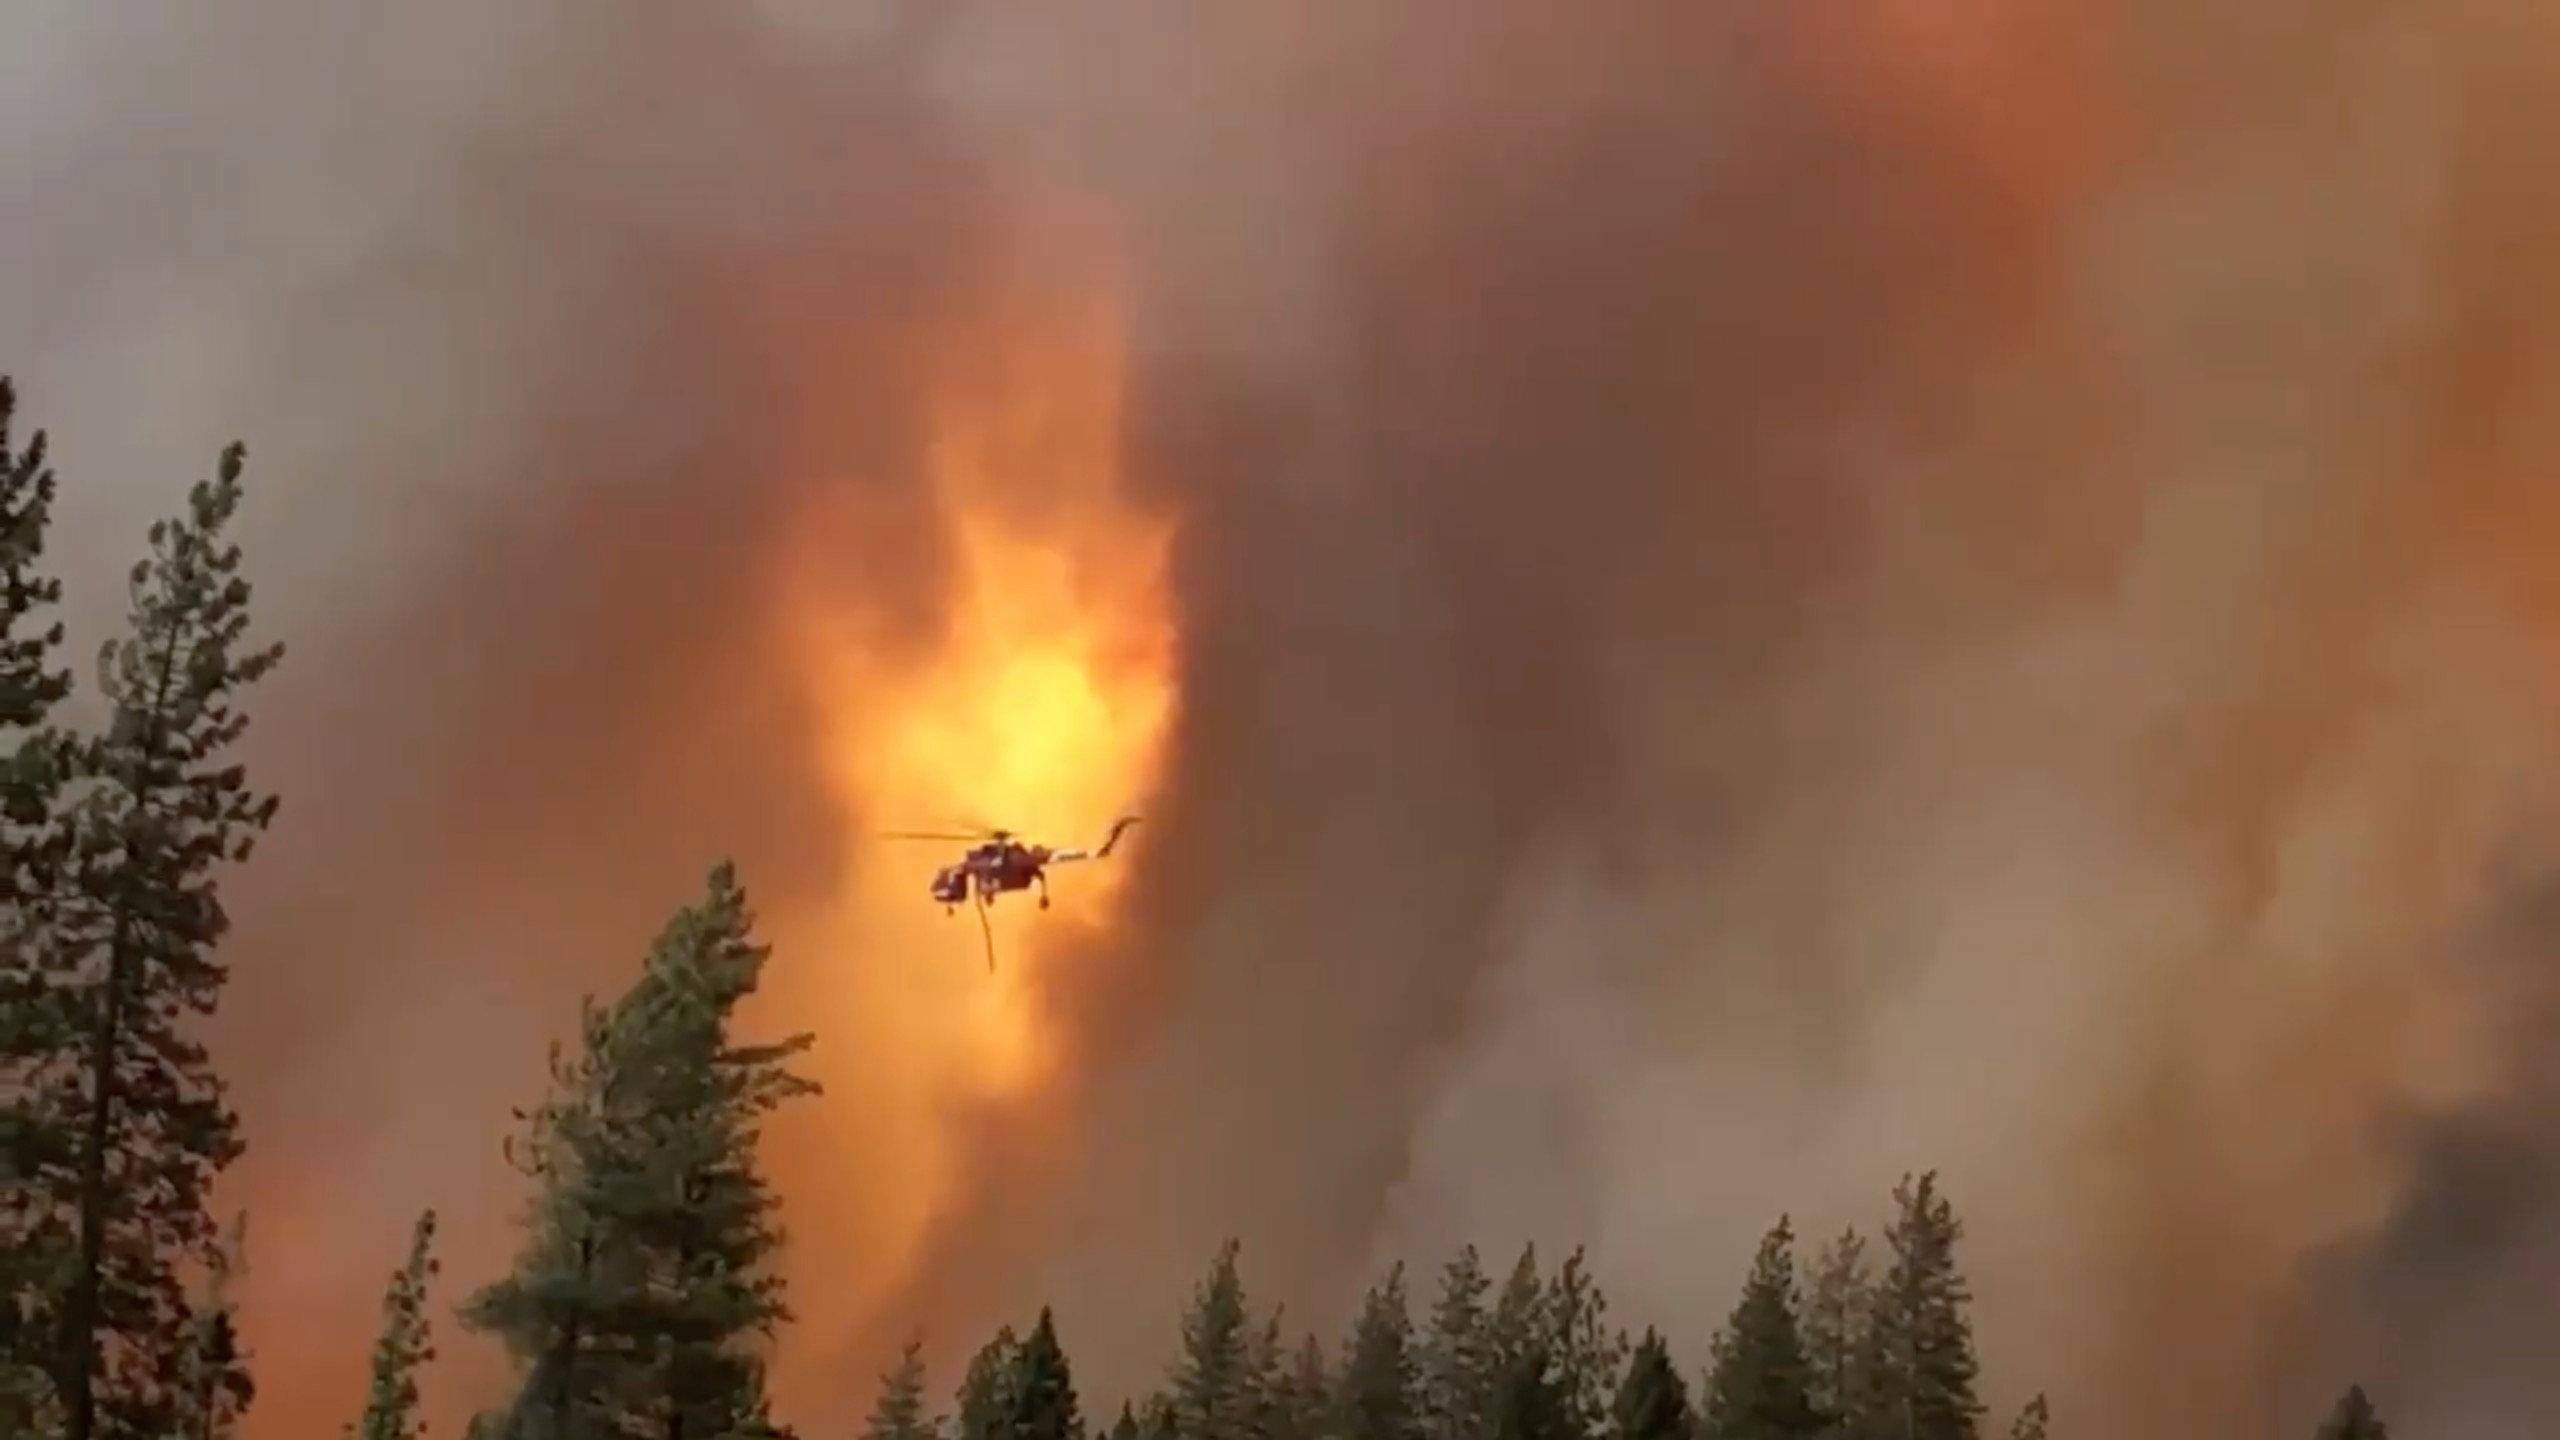 A helicopter drops water on a forest fire in Shasta County in California, U.S., September 5, 2018 in this picture obtained on September 6, 2018 from a social media video. CALIFORNIA HIGHWAY PATROL/via